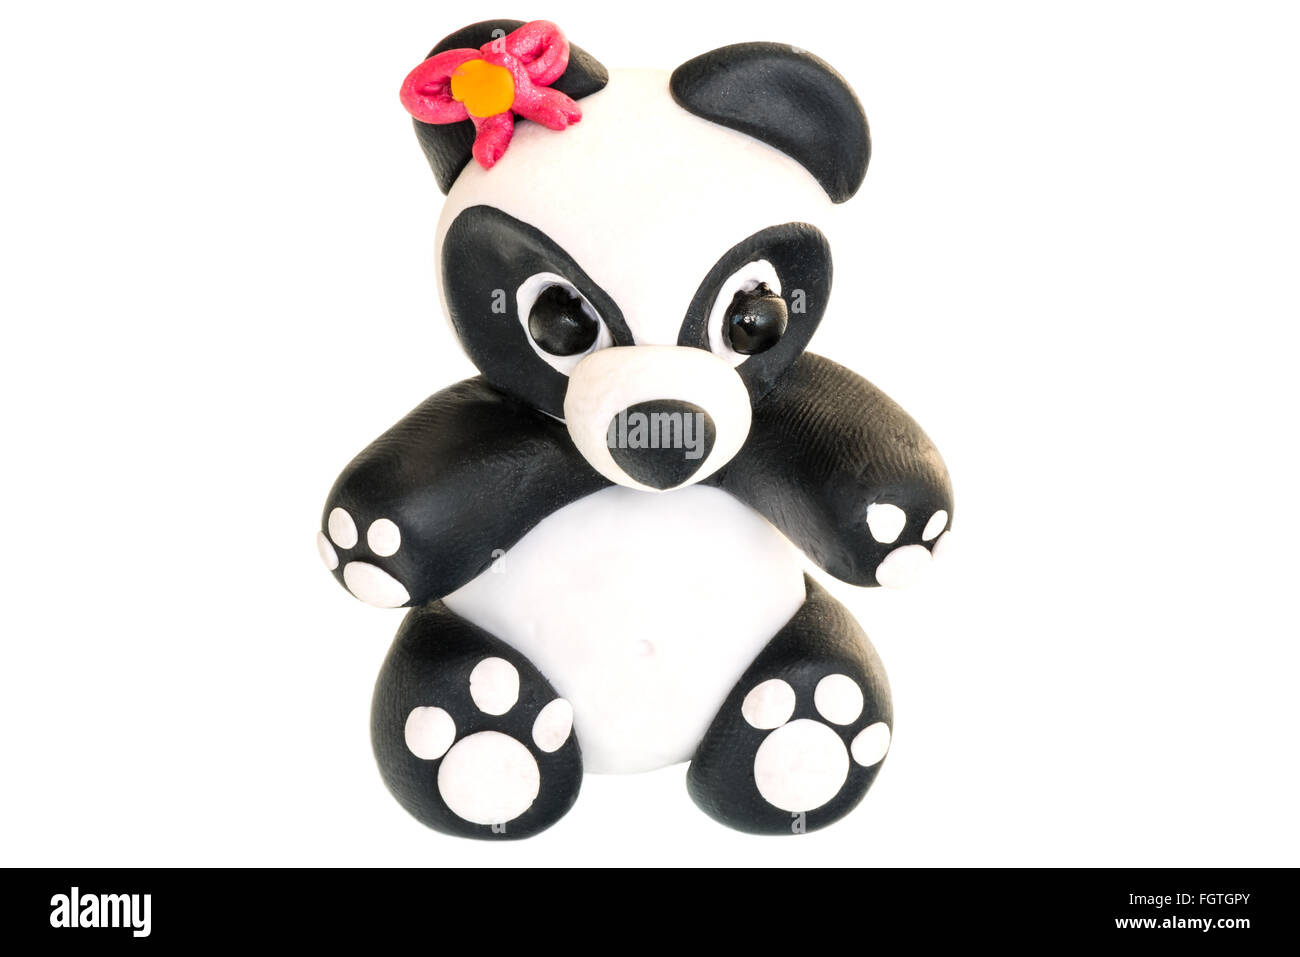 Panda figurine made of polymer clay on a white background. - Stock Image